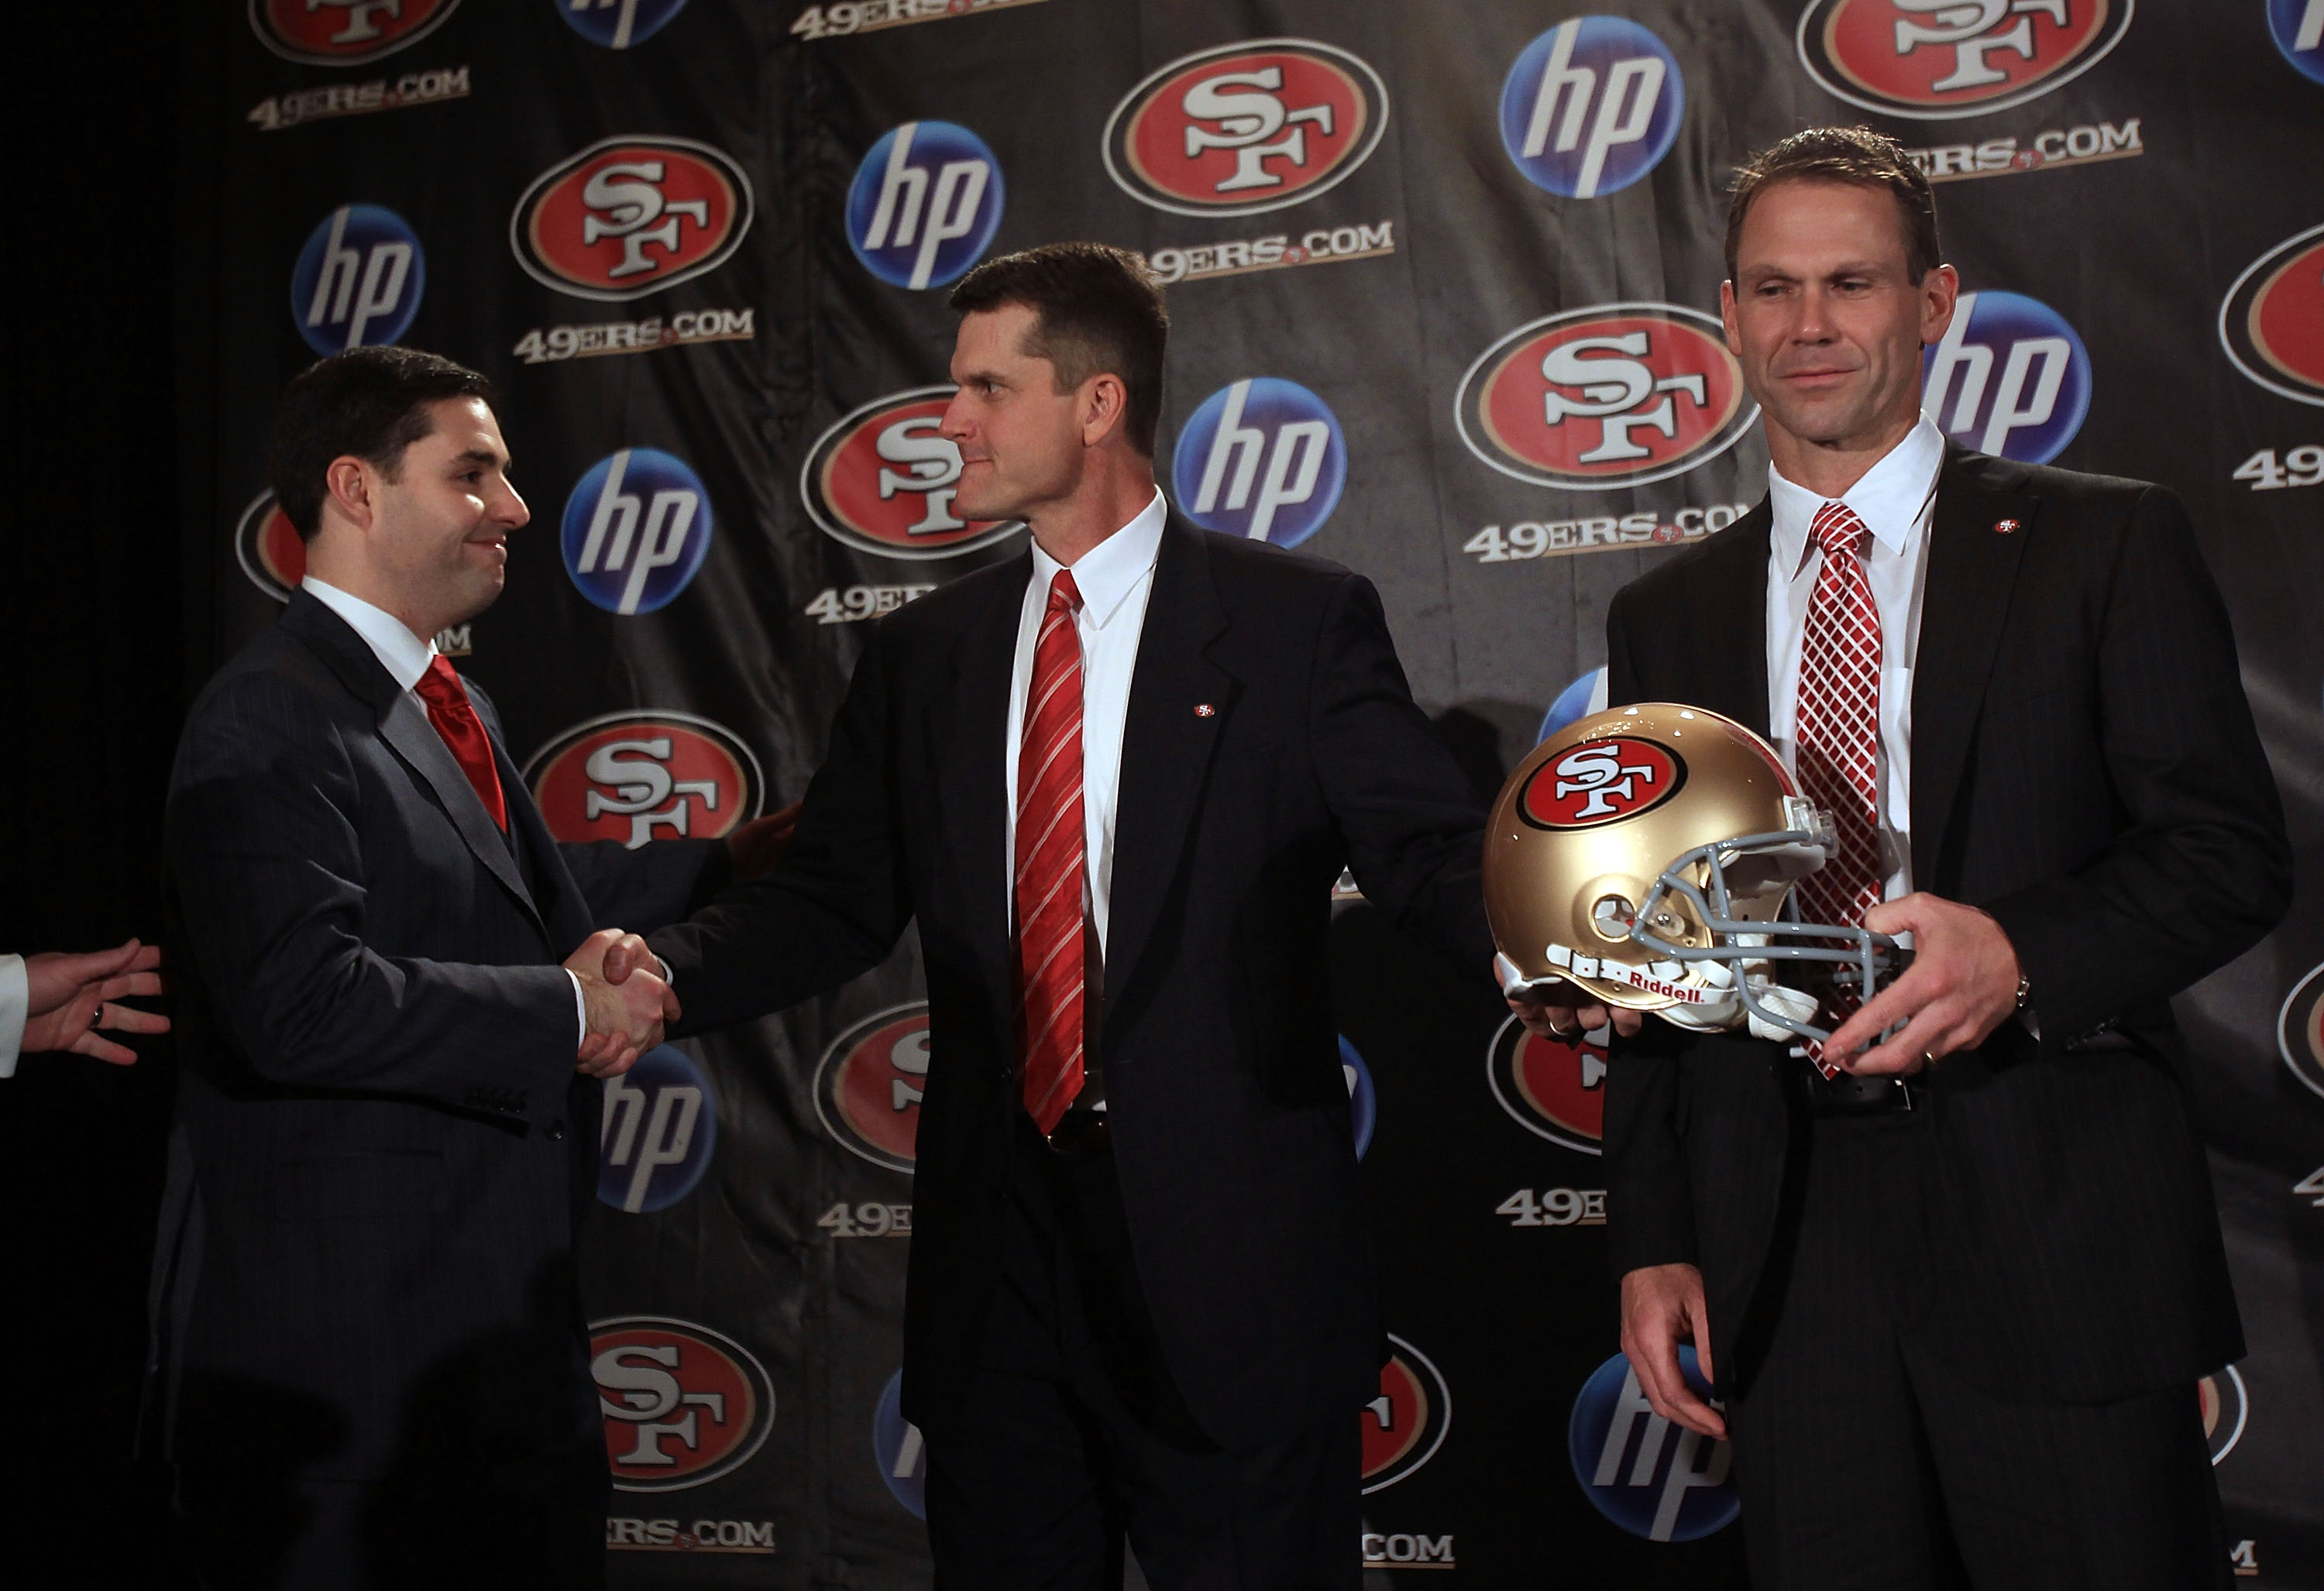 SAN FRANCISCO, CA - JANUARY 07:  Jim Harbaugh shakes hands with President and CEO of the San Francisco 49ers, Jed York, while general manager Trent Baalk holds a 49ers helmet following a press conference where Harbaugh was introduced as the new San Franci